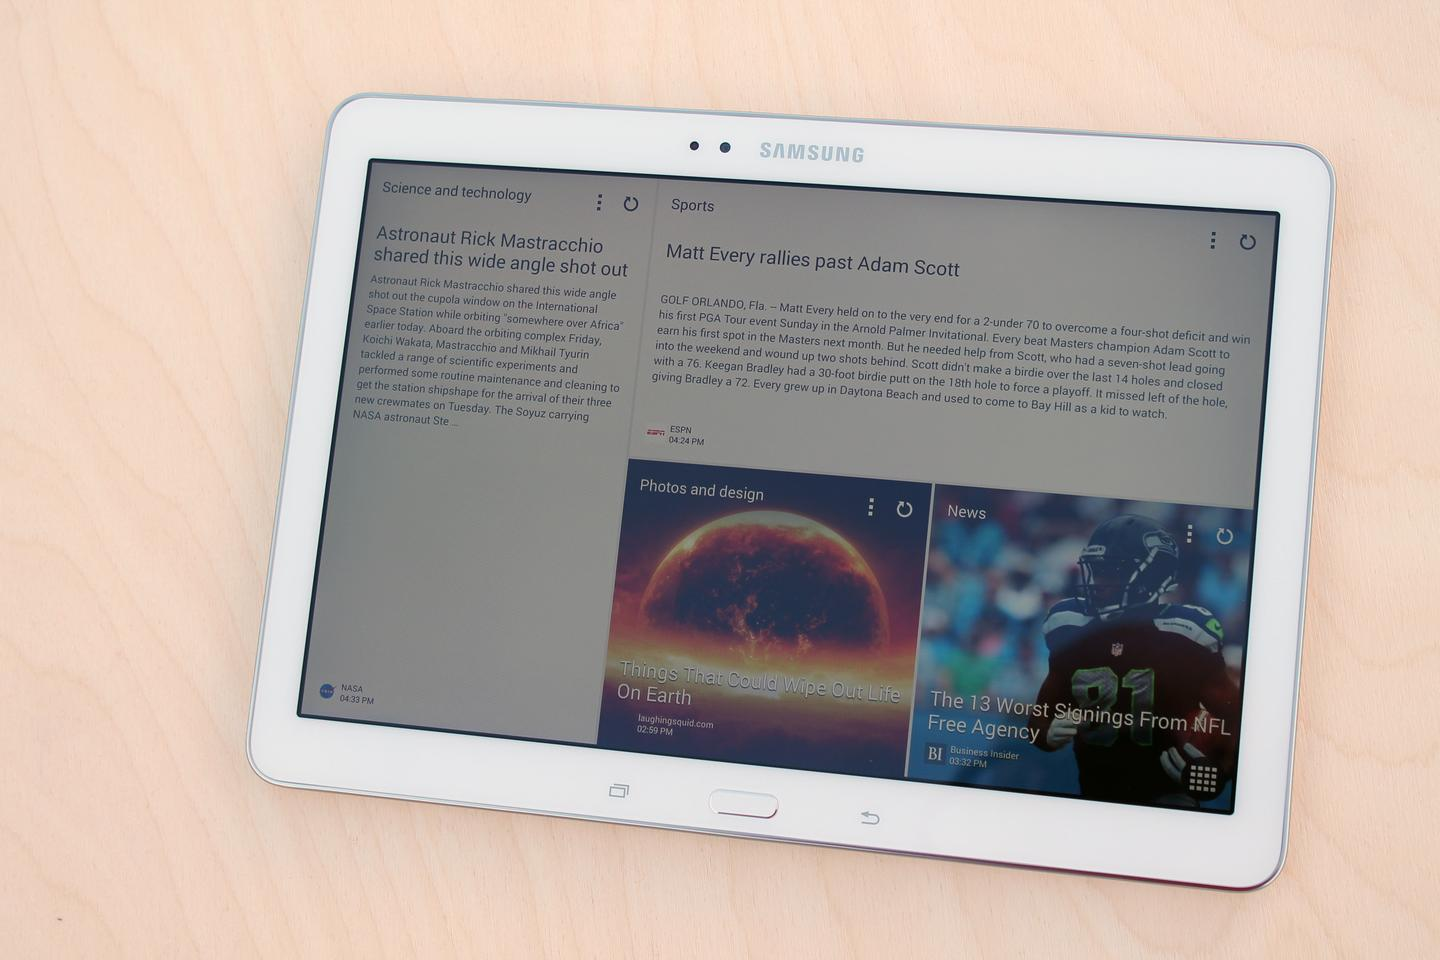 Samsung's Magazine UX puts Flipboard widgets on your home screen